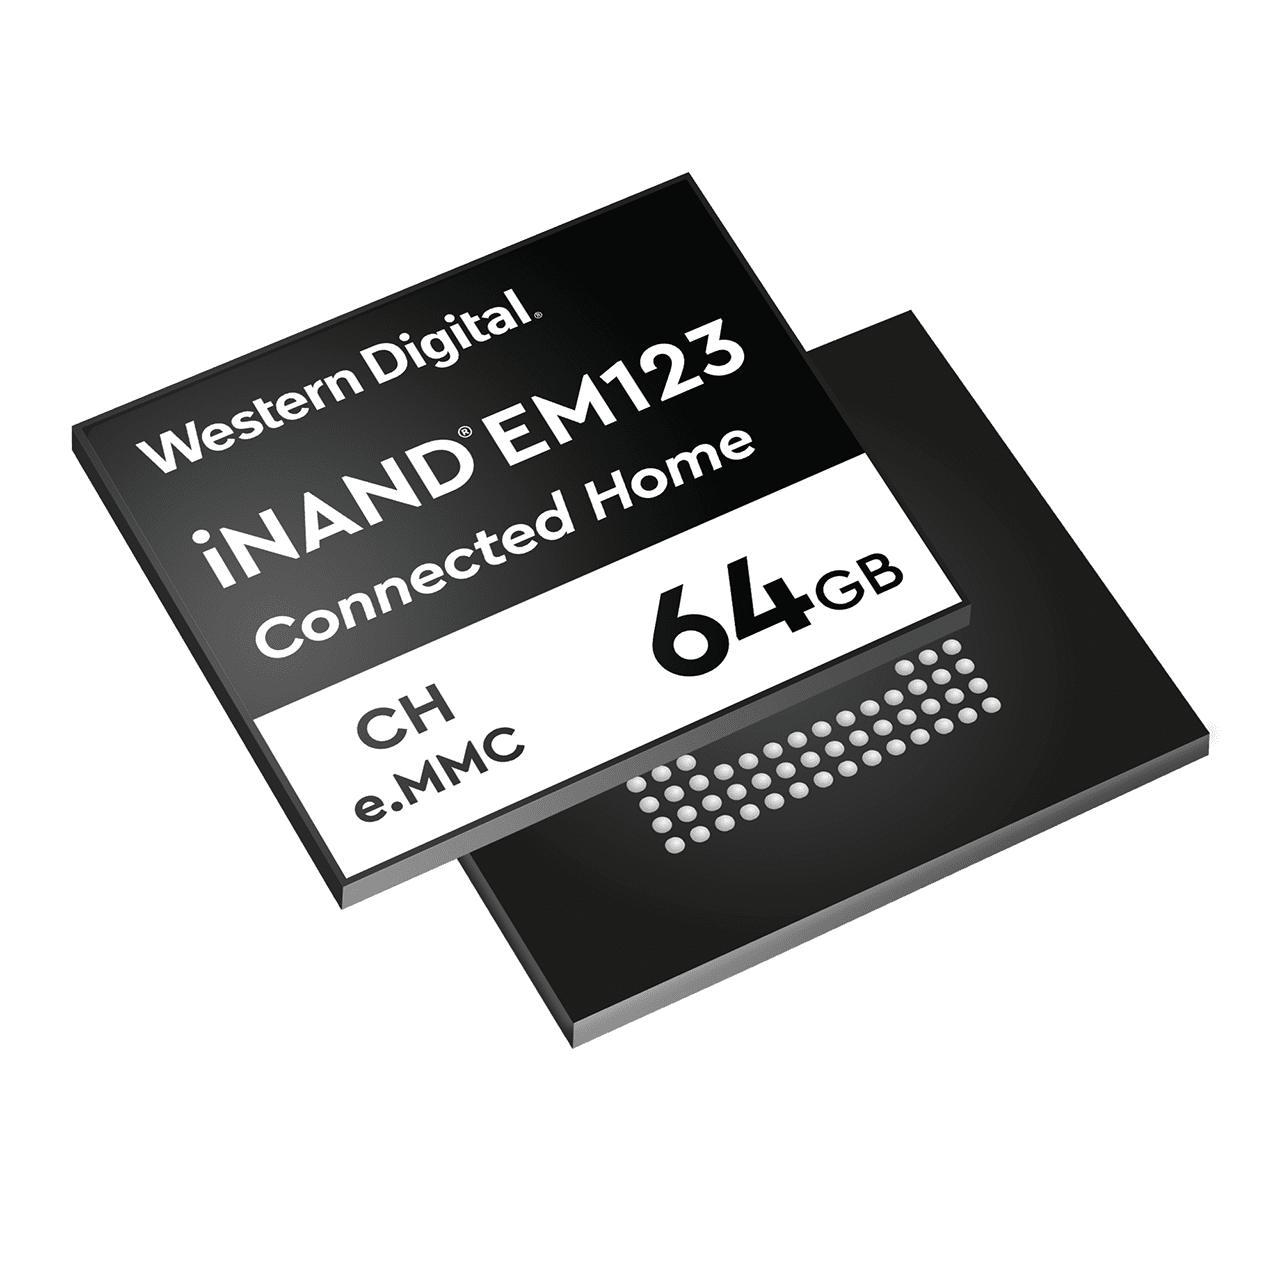 Connected Home iNAND e MMC Embedded Flash Drives